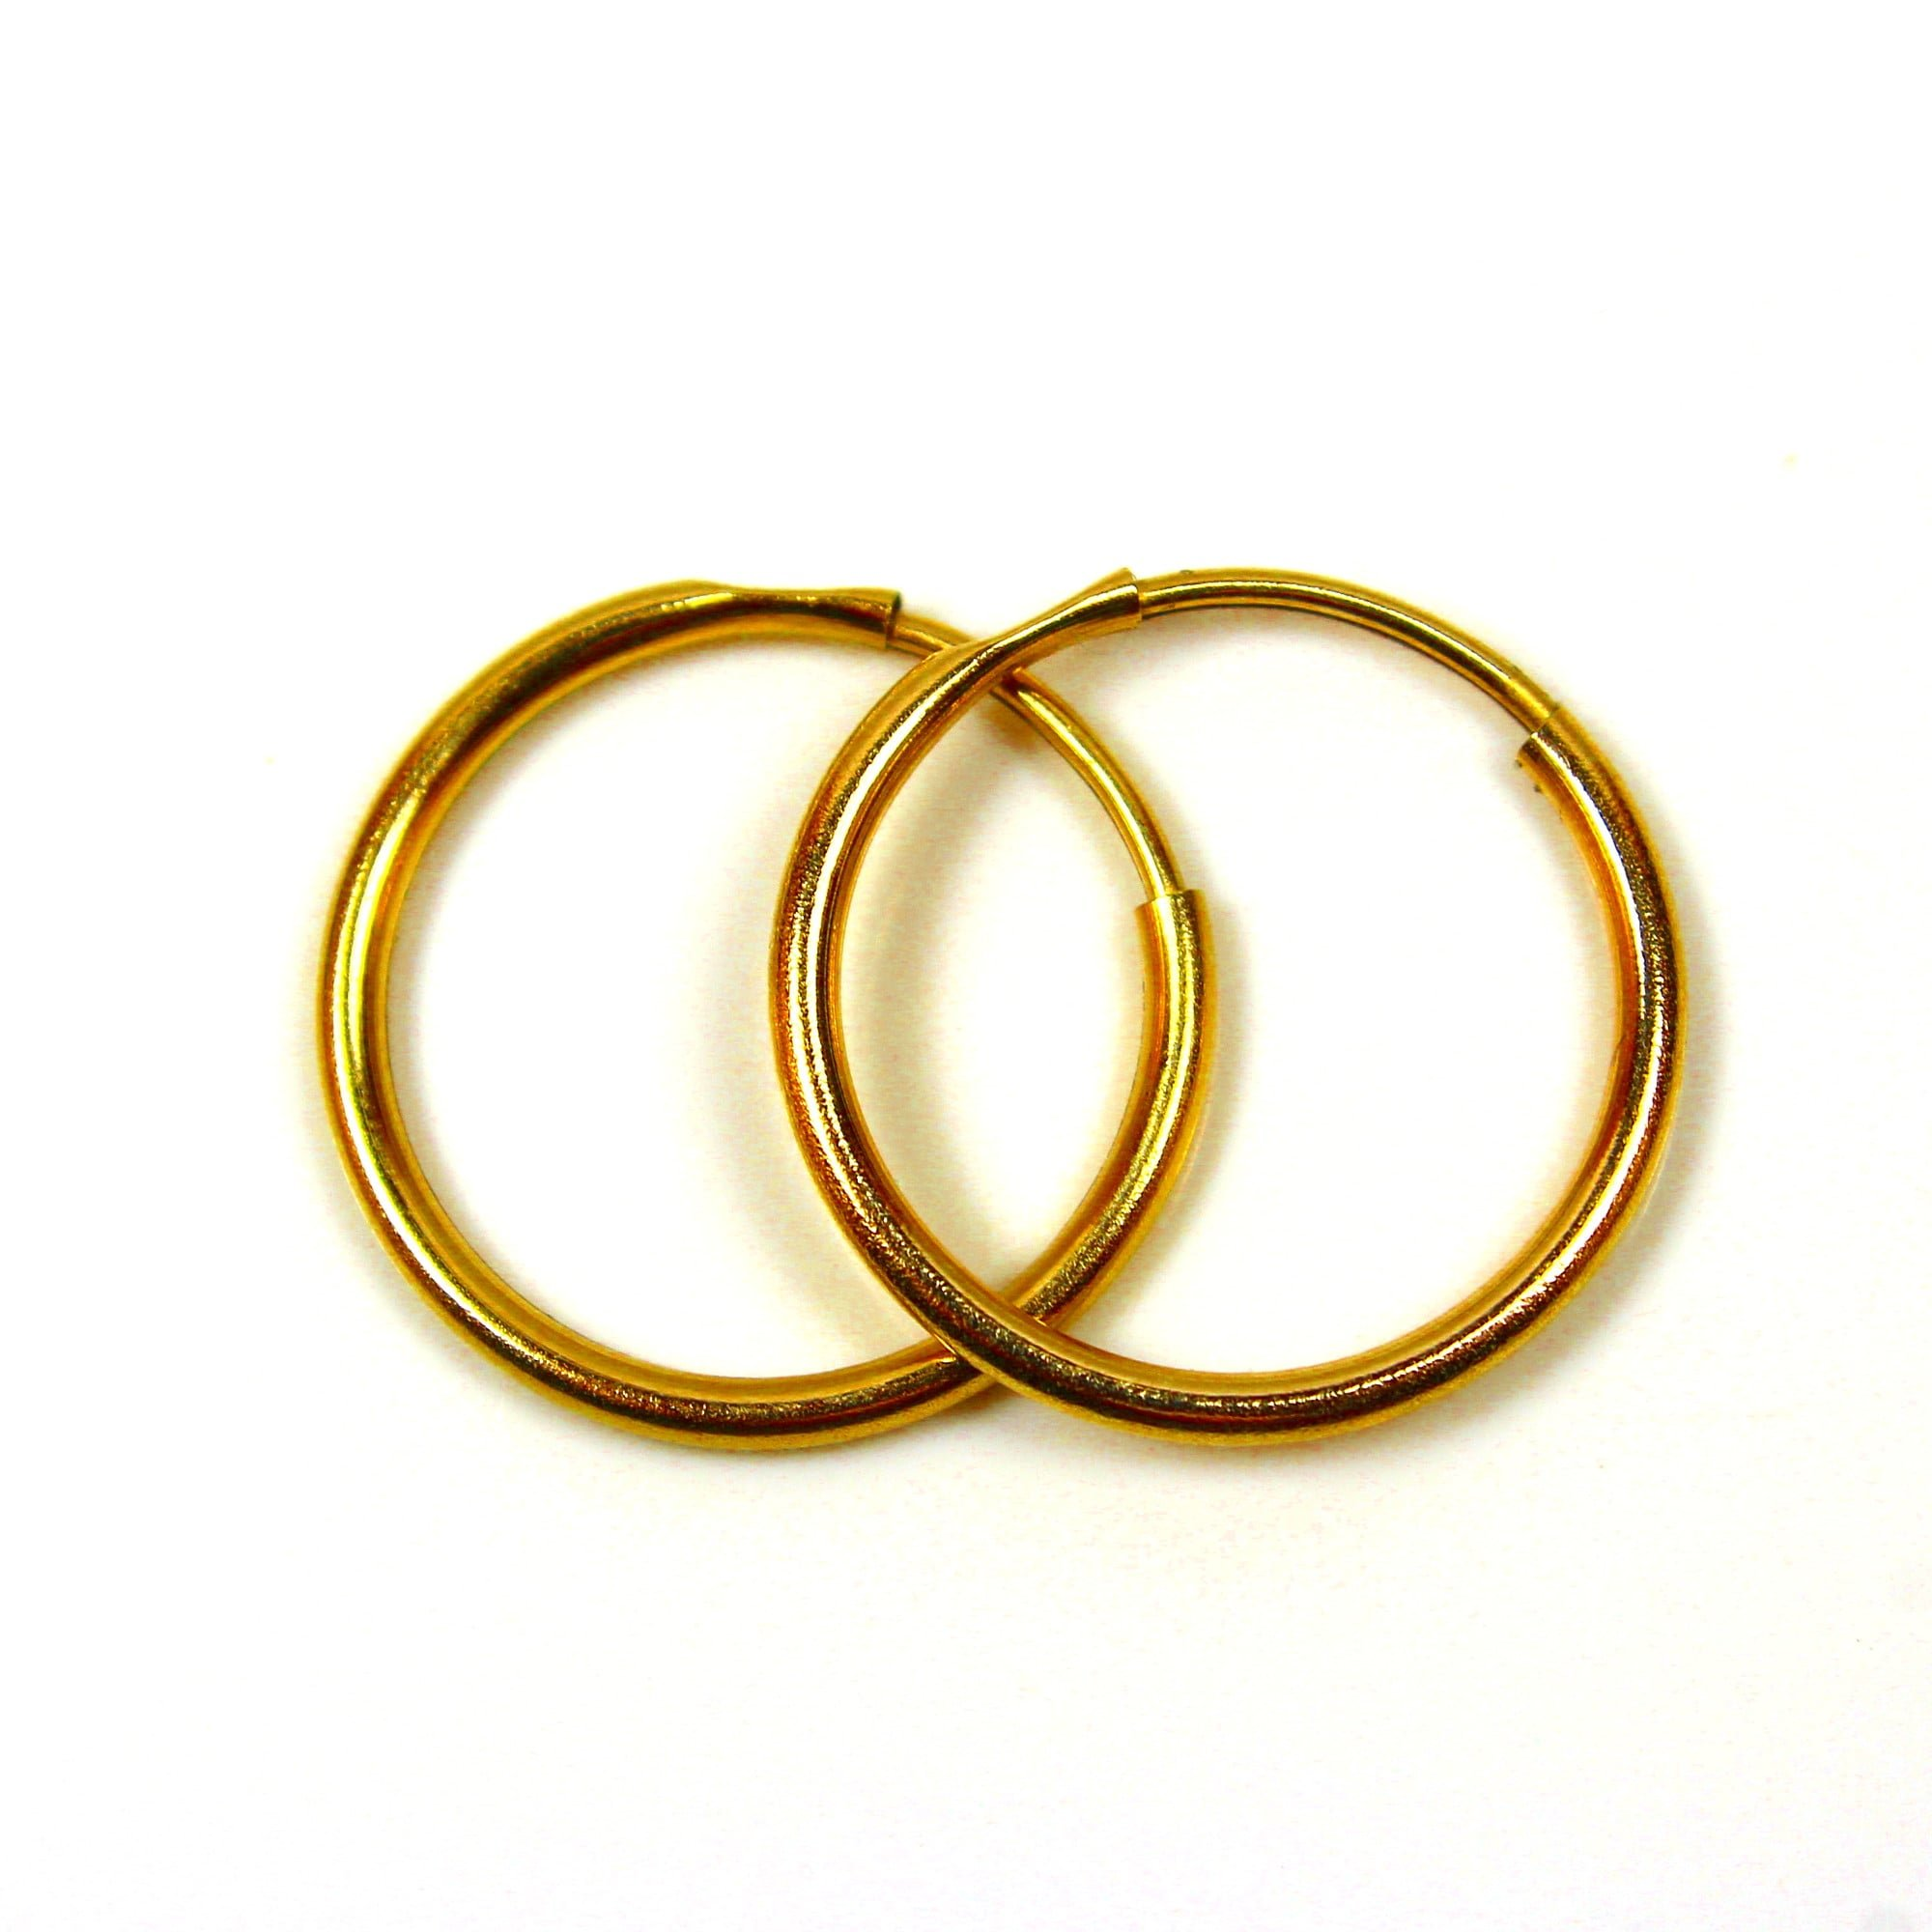 14mm gold hoop earrings